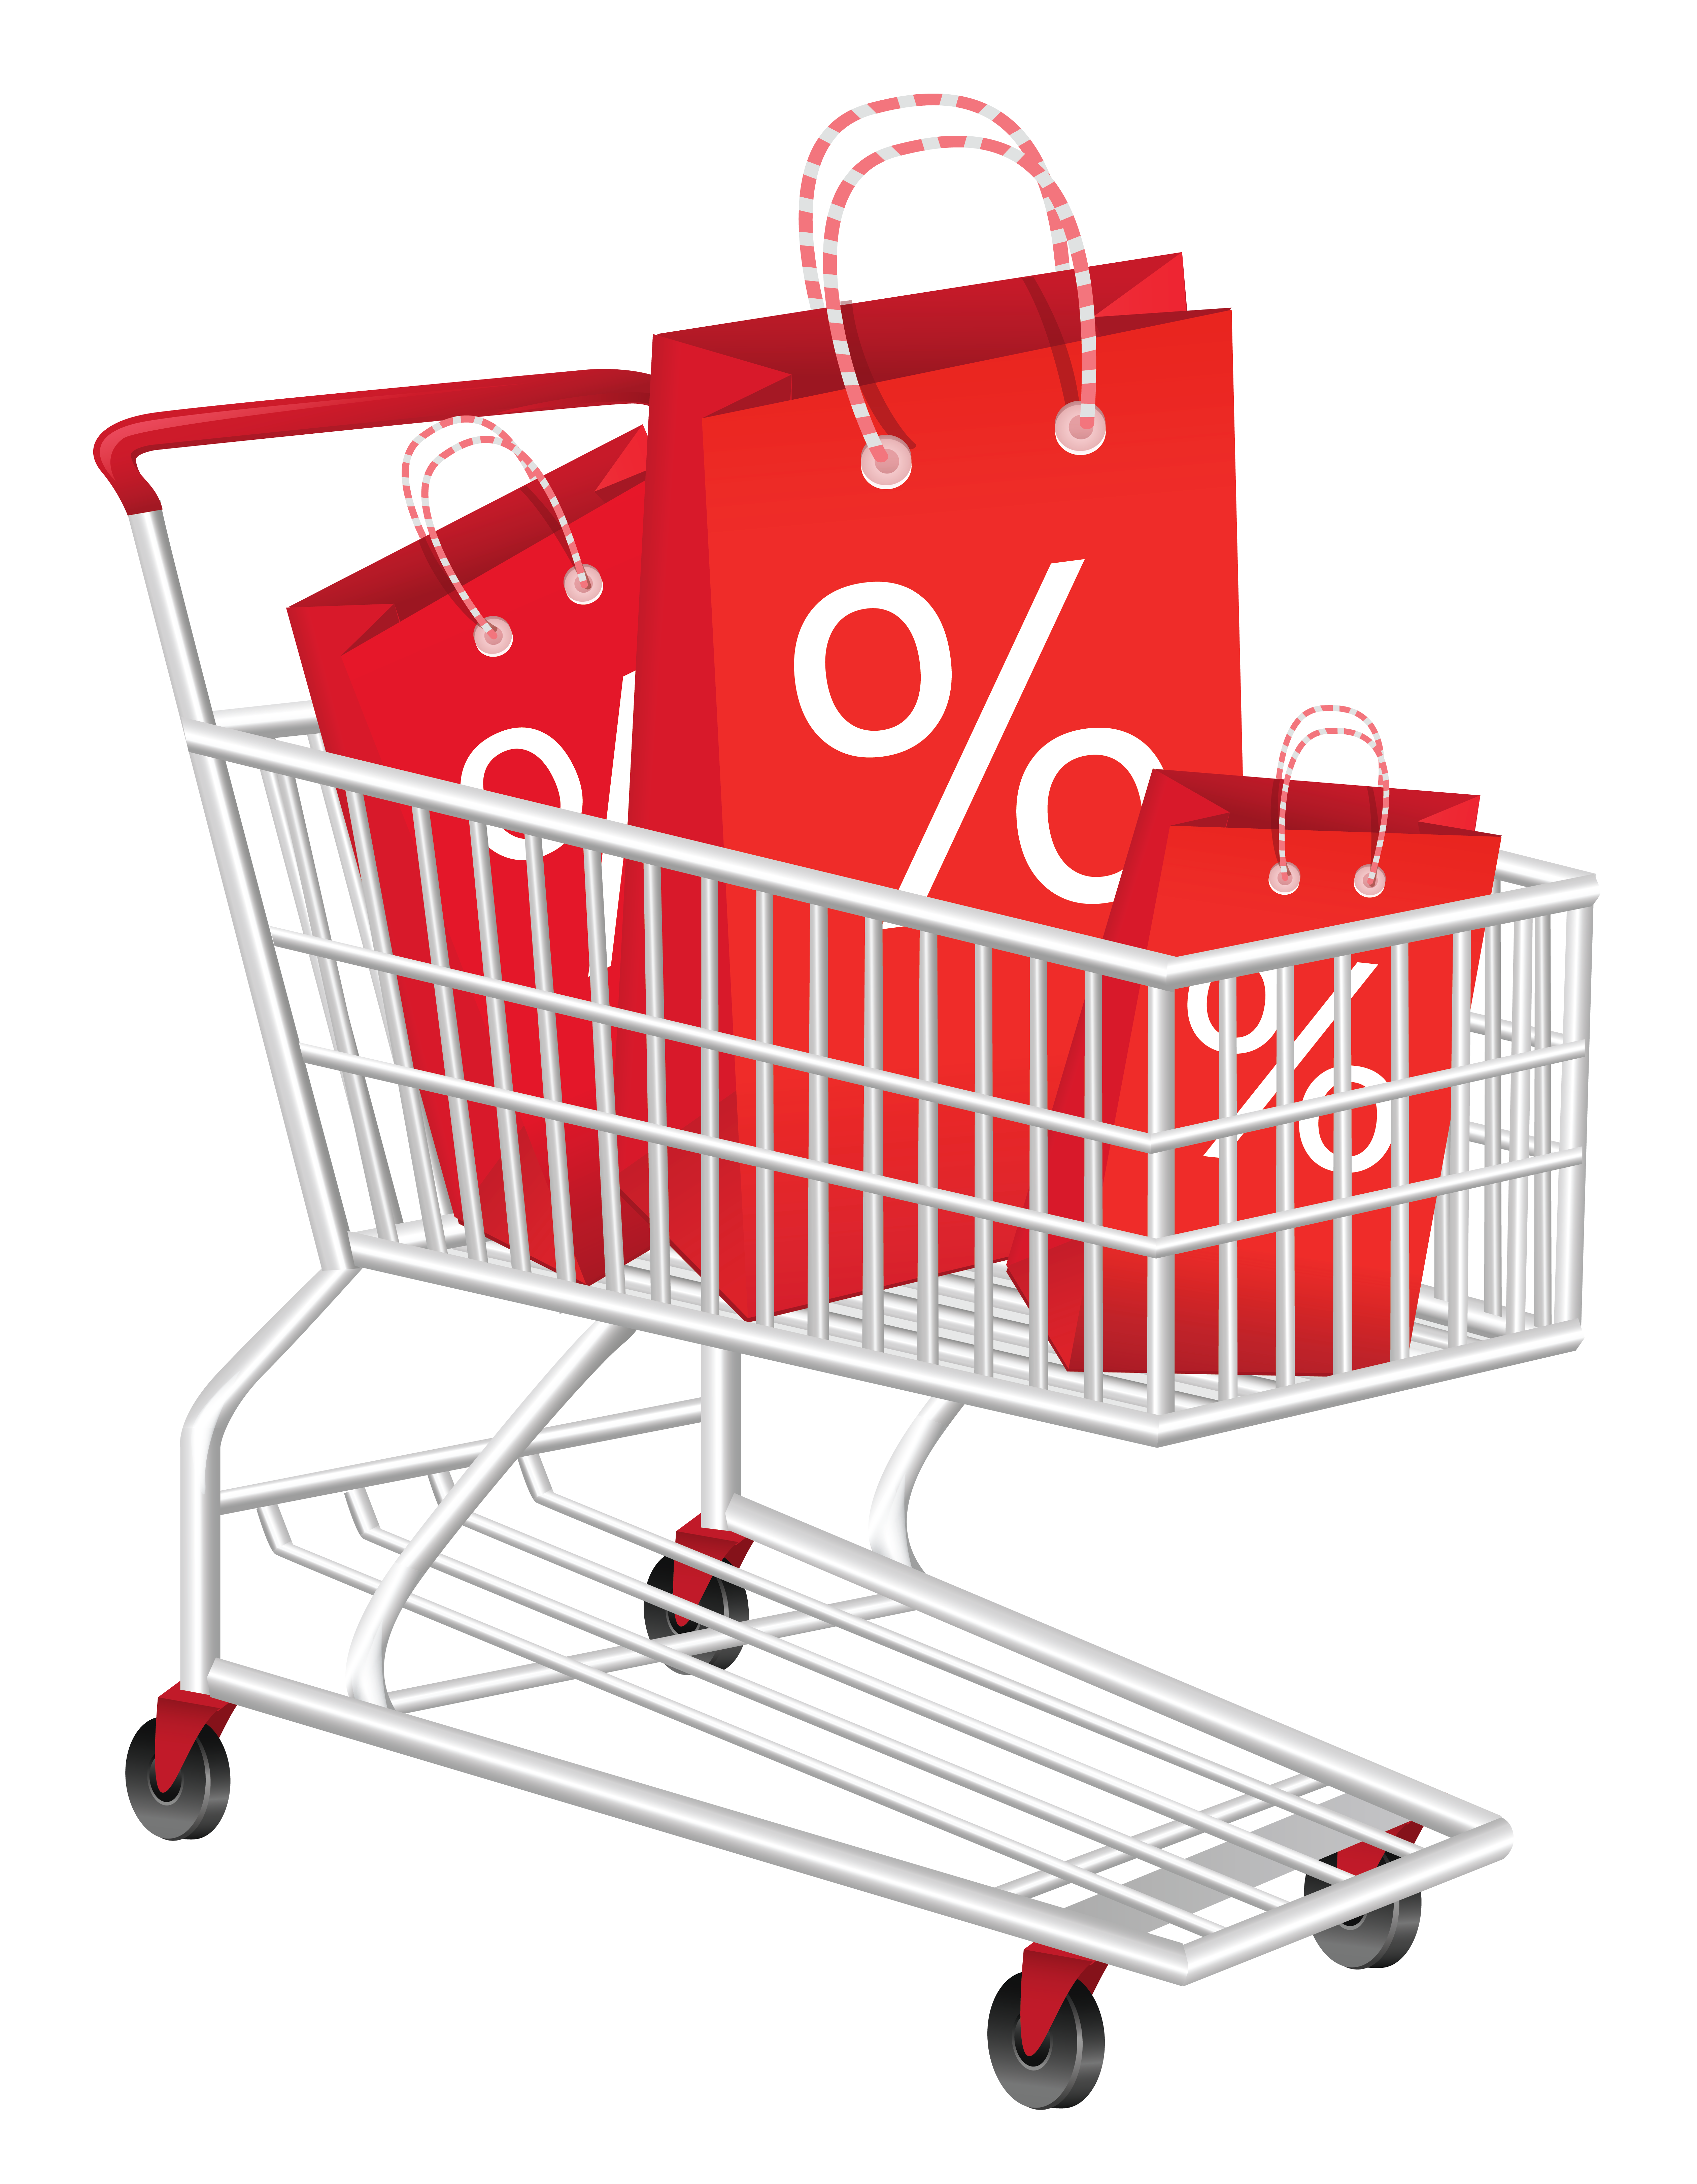 Discount cart png picture. Couple clipart shopping